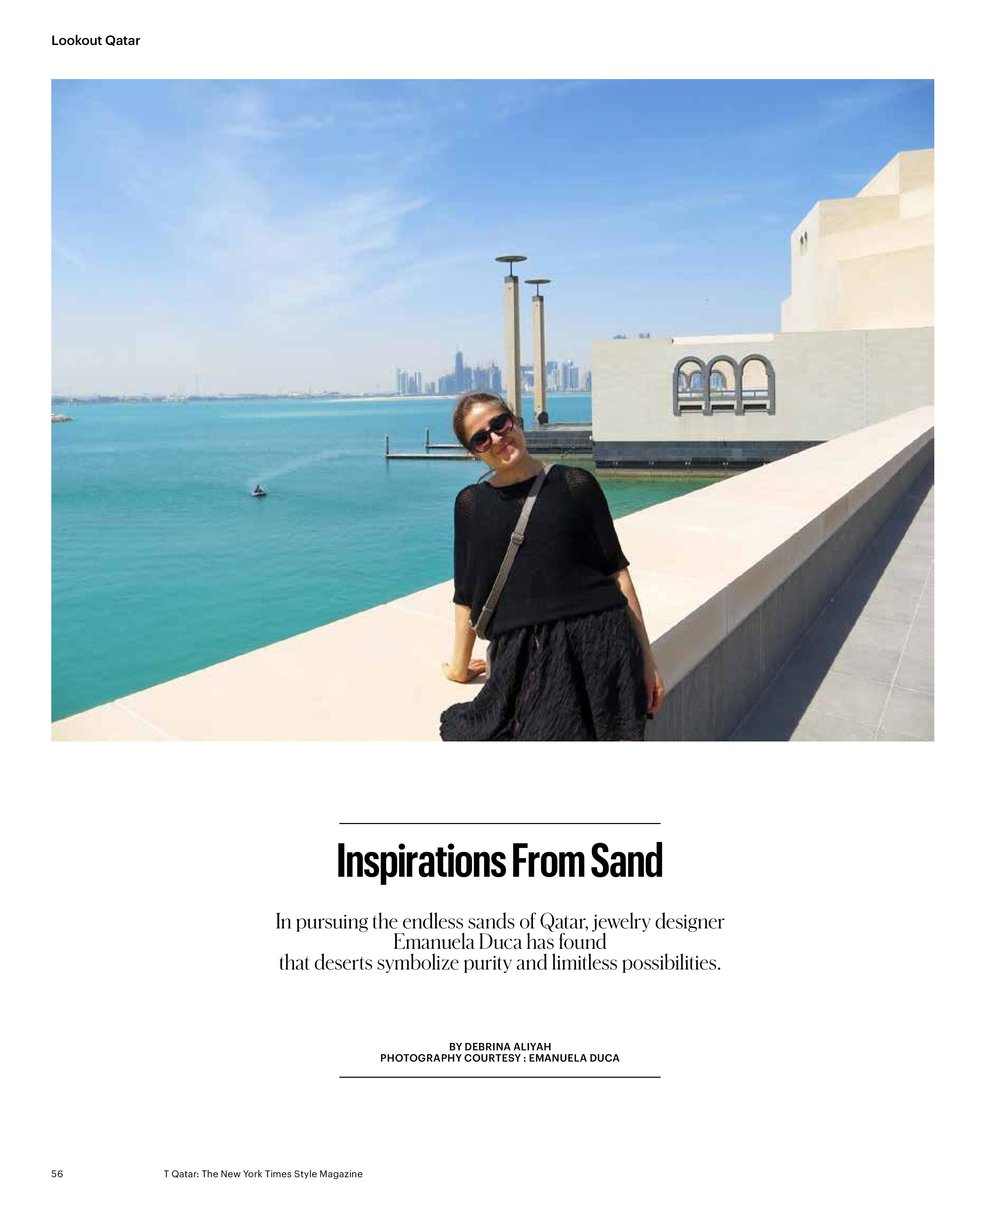 TQatar - The New York Times, Style Magazine, May 13